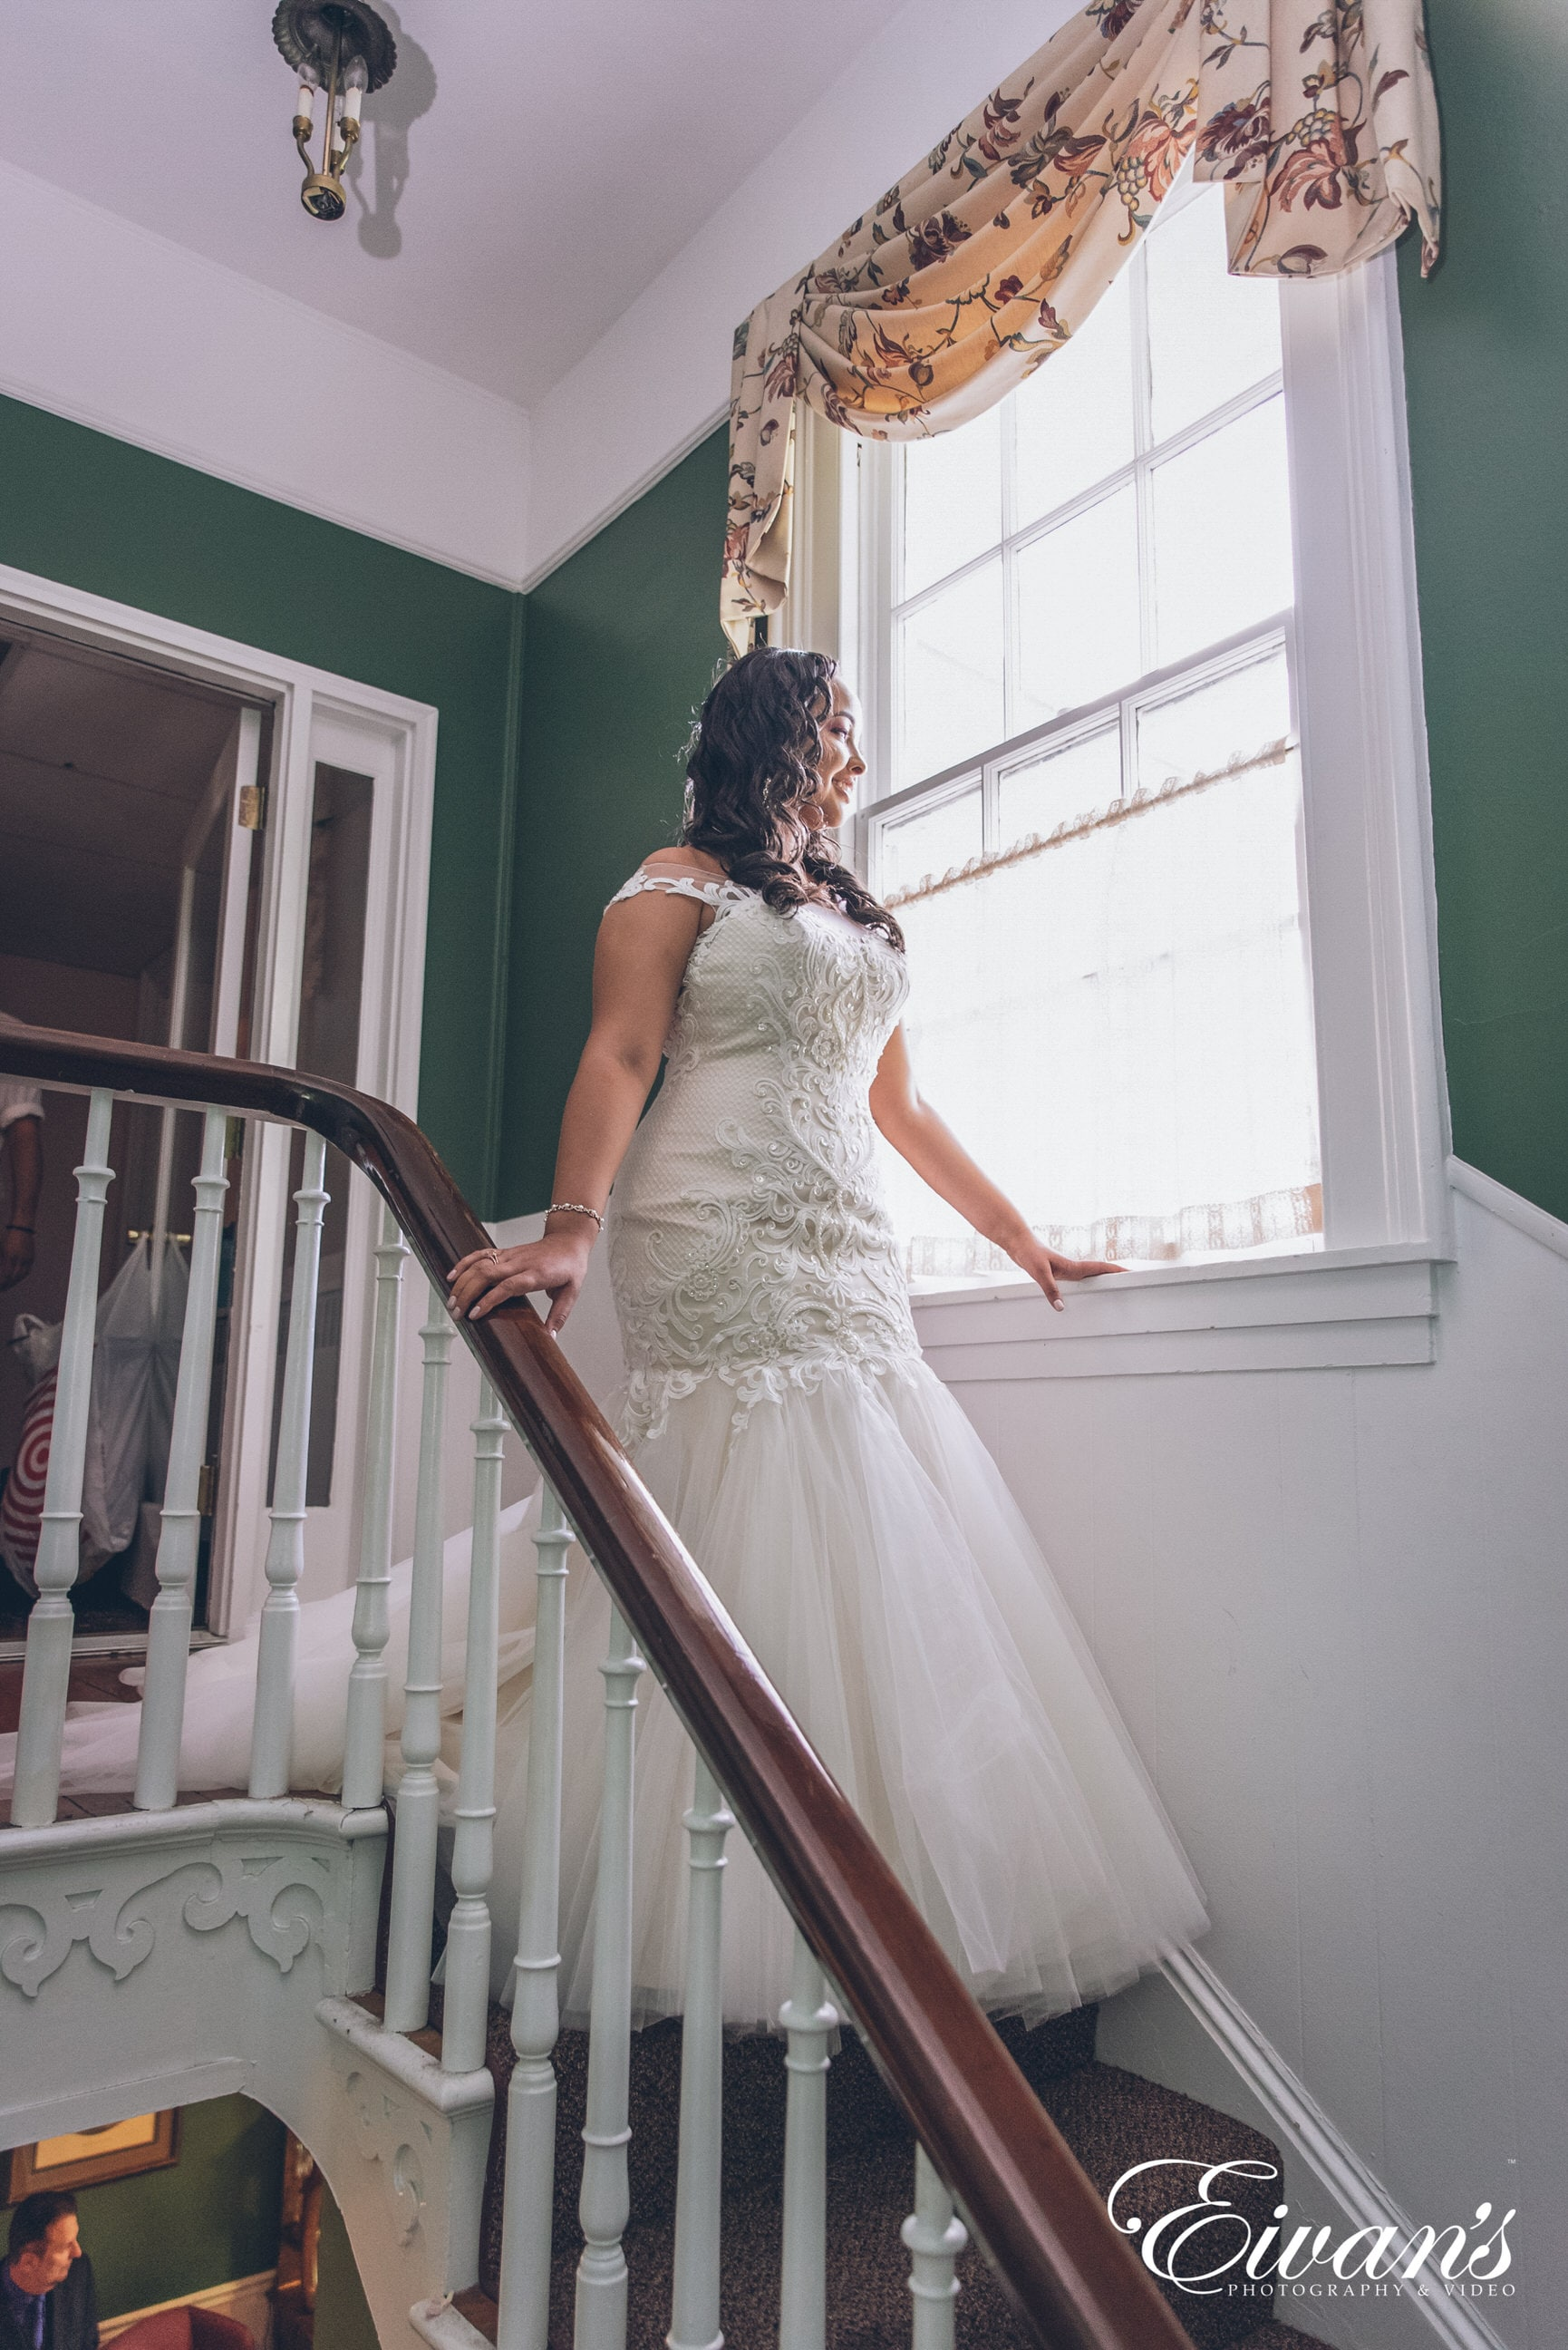 woman in white wedding dress standing on staircase